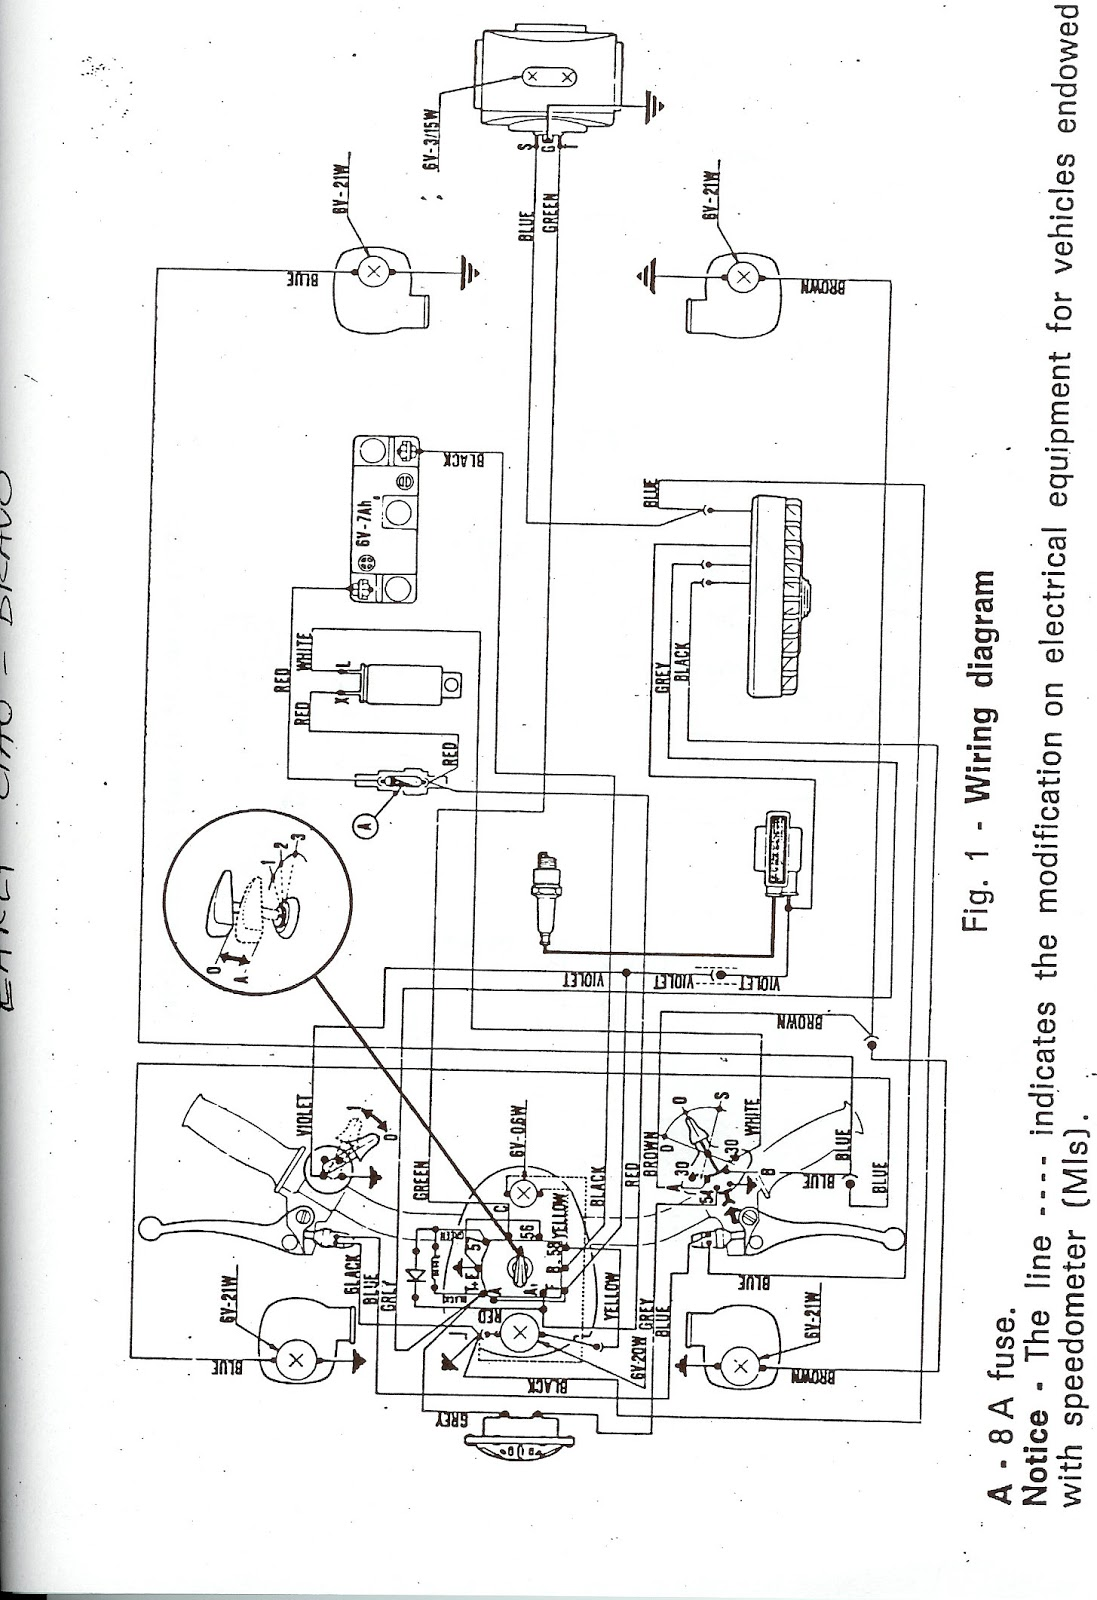 1986 Yamaha Xs1100 Wiring Diagram Vehicle Diagrams Bobber Deadped Vespa In A Nutshell Rh Blogspot Wiringdiagram 90 Outboard